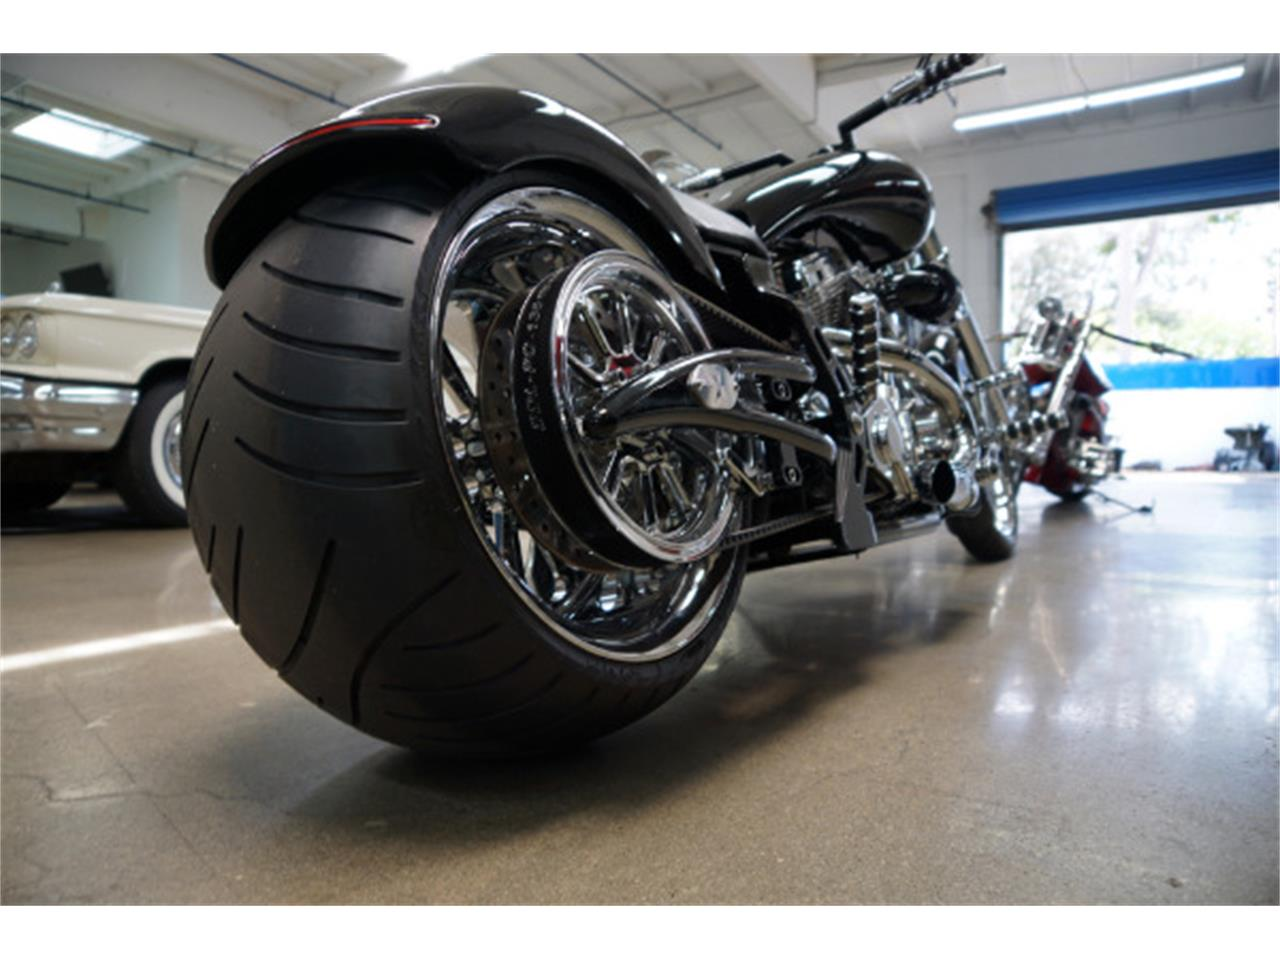 2010 Custom Motorcycle (CC-1246218) for sale in Torrance, California